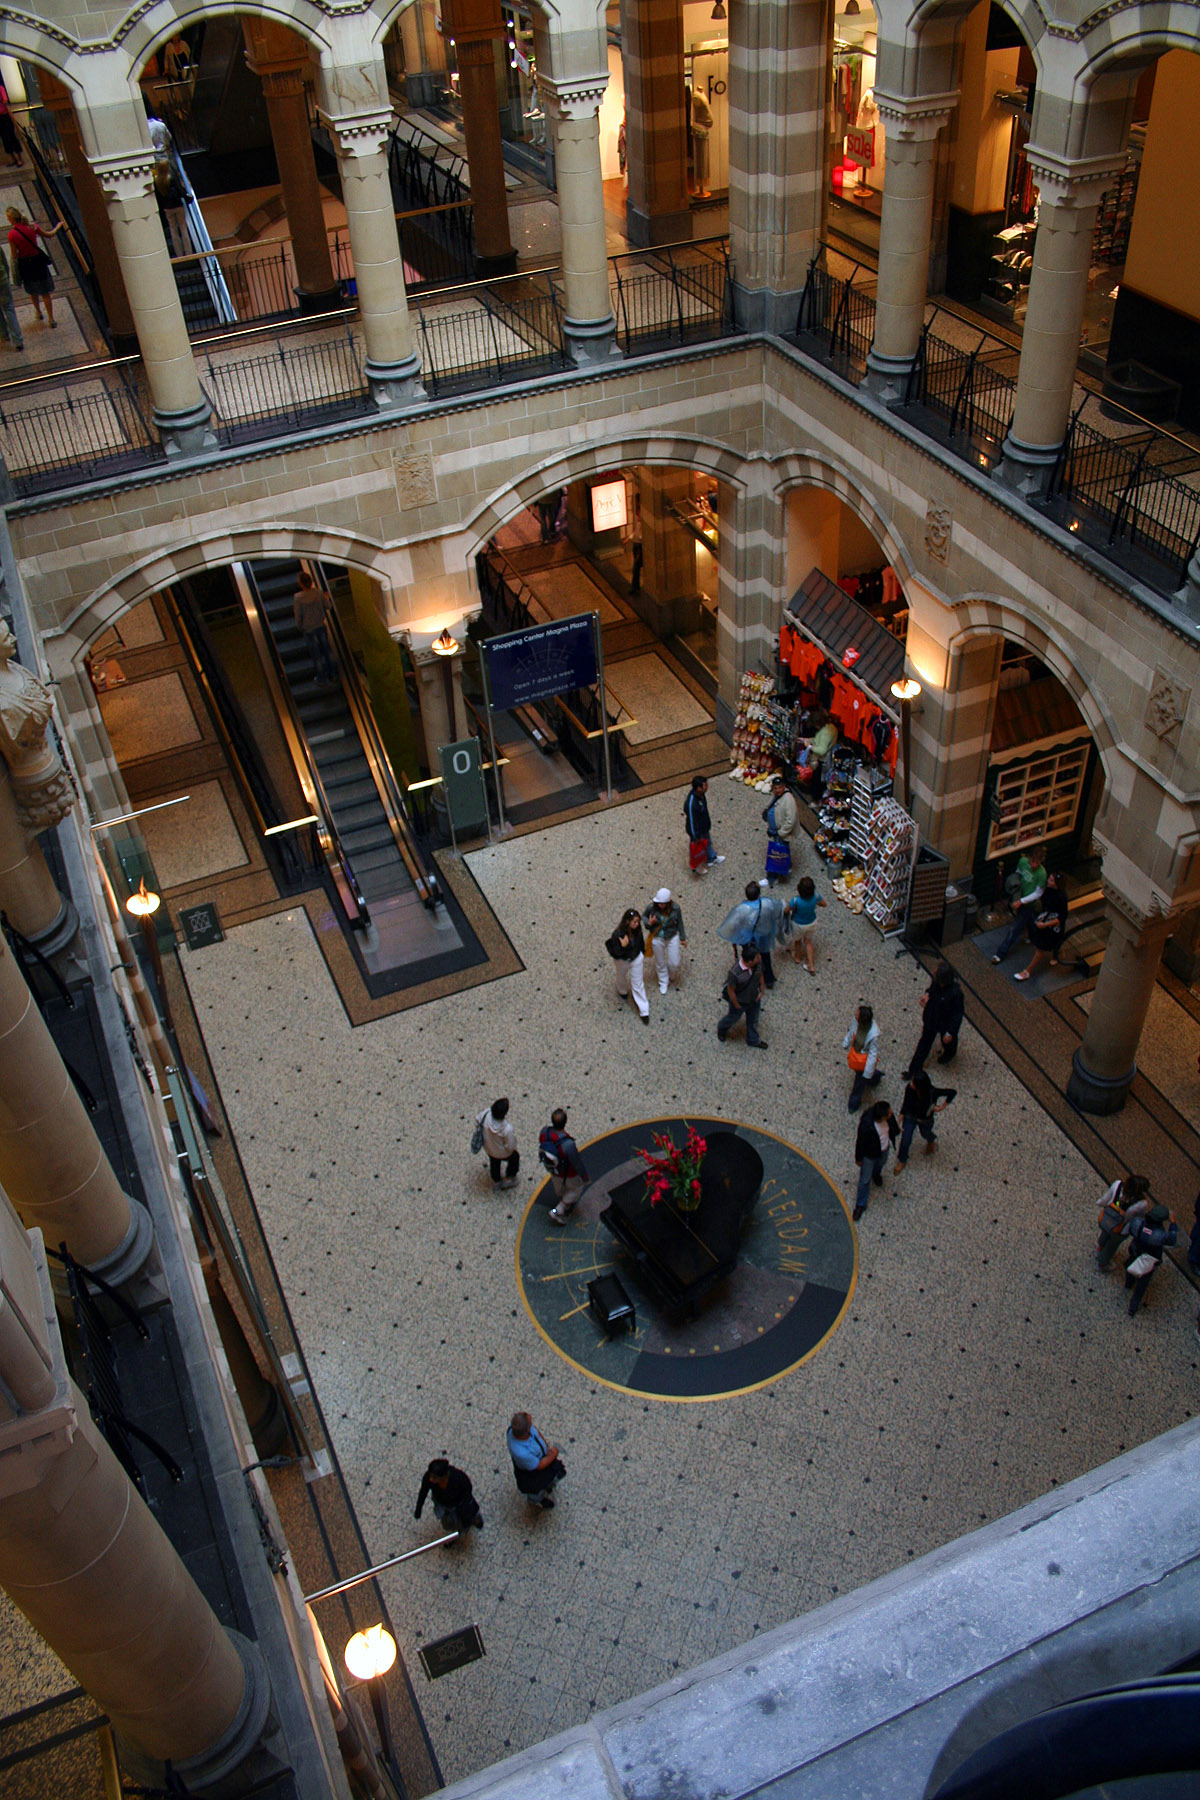 57032, Shopping, Walking, Wide, Wideangle, HQ Photo